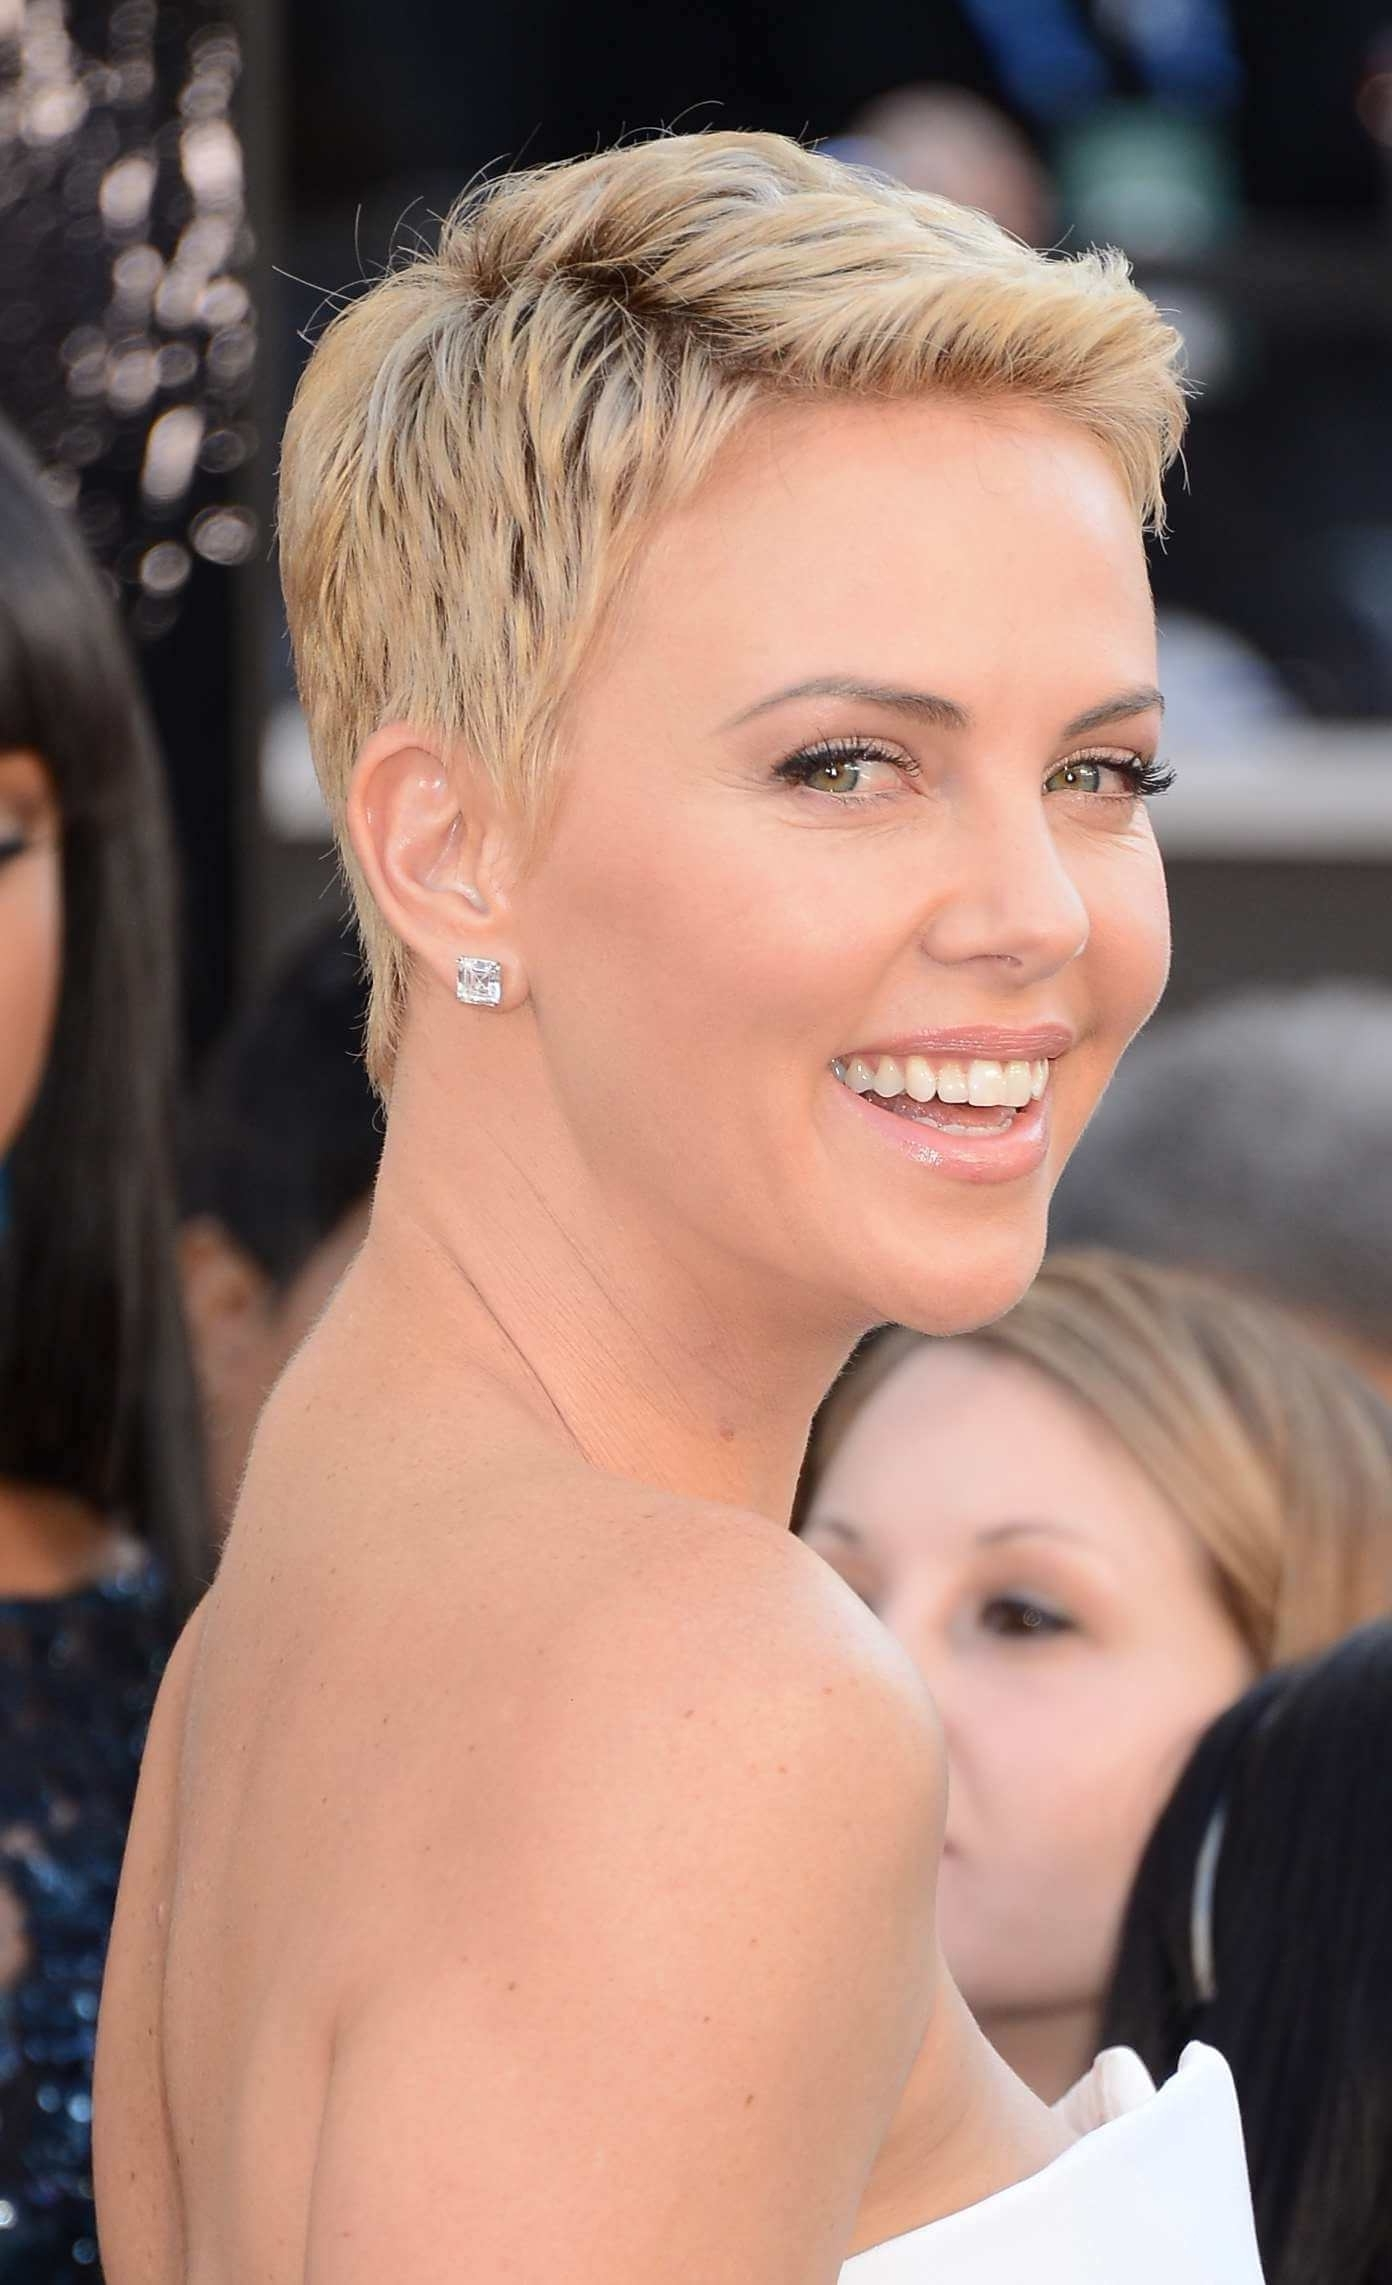 Short Pixie Haircuts For Fine Thin Hair Within Most Up To Date Pixie Hairstyles Styles For Thin Hair (View 14 of 15)